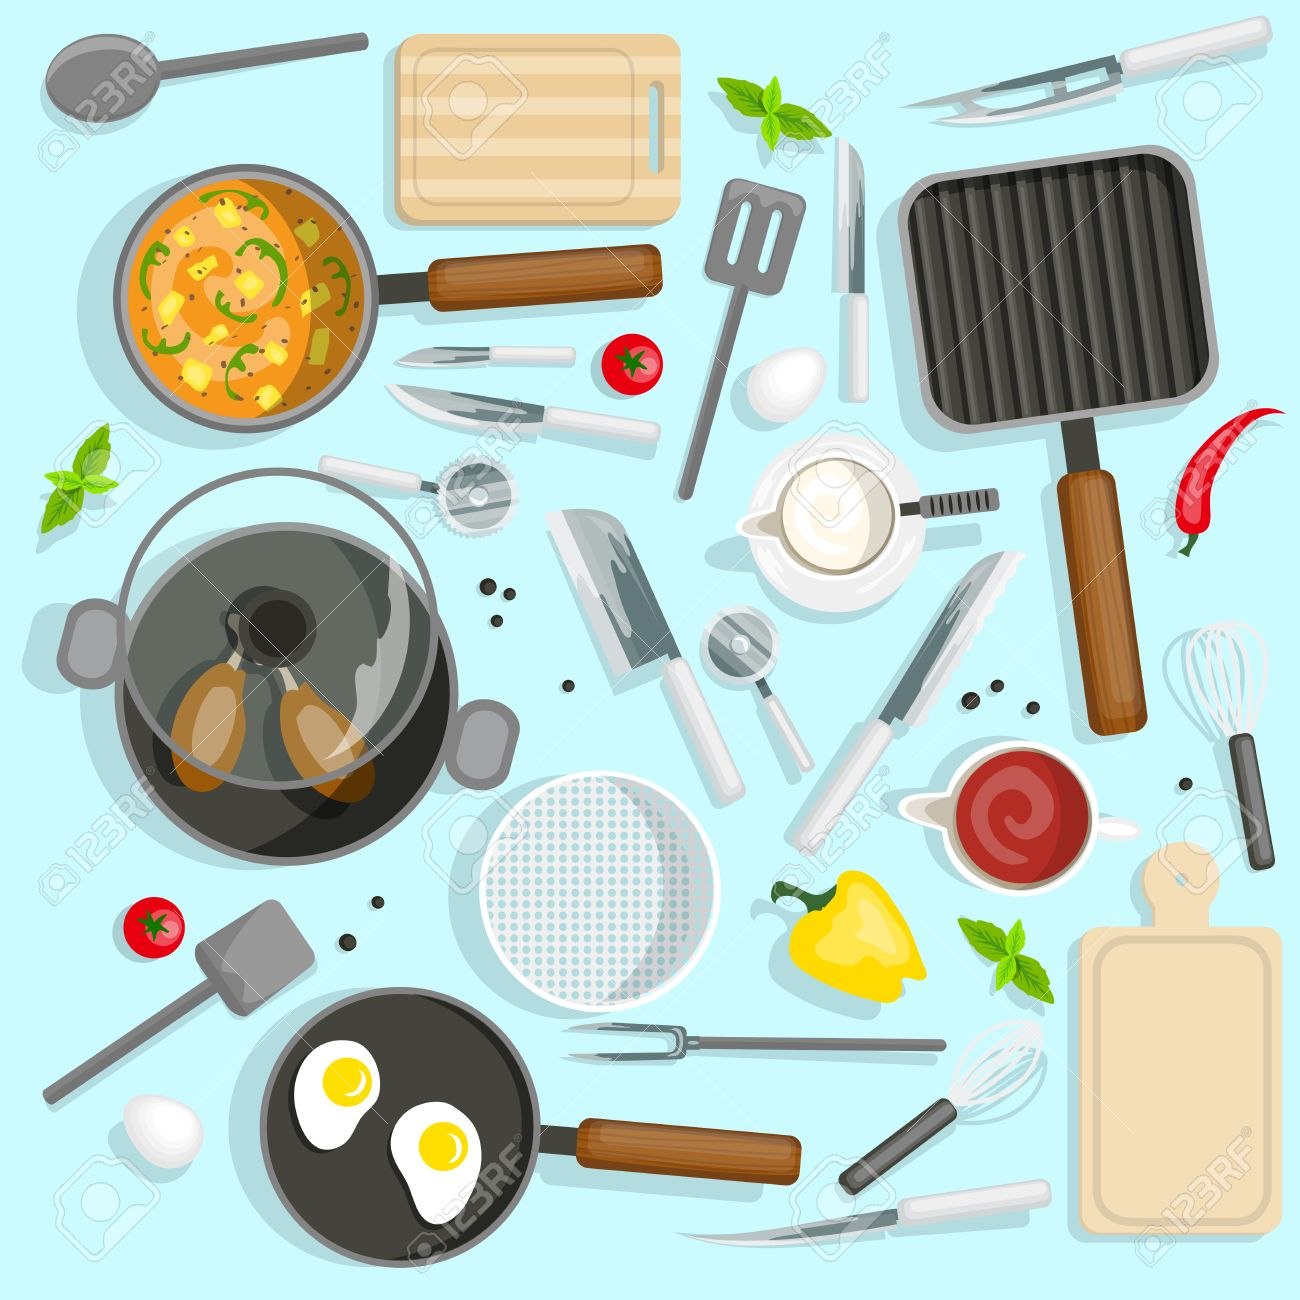 Cooking Top View Set. Chef Workplace Vector Illustration. Kitchen Utensils Cartoon Symbols. Kitchen Devices Design Set. Kitchen And Cooking Isolated Set. - 57229691